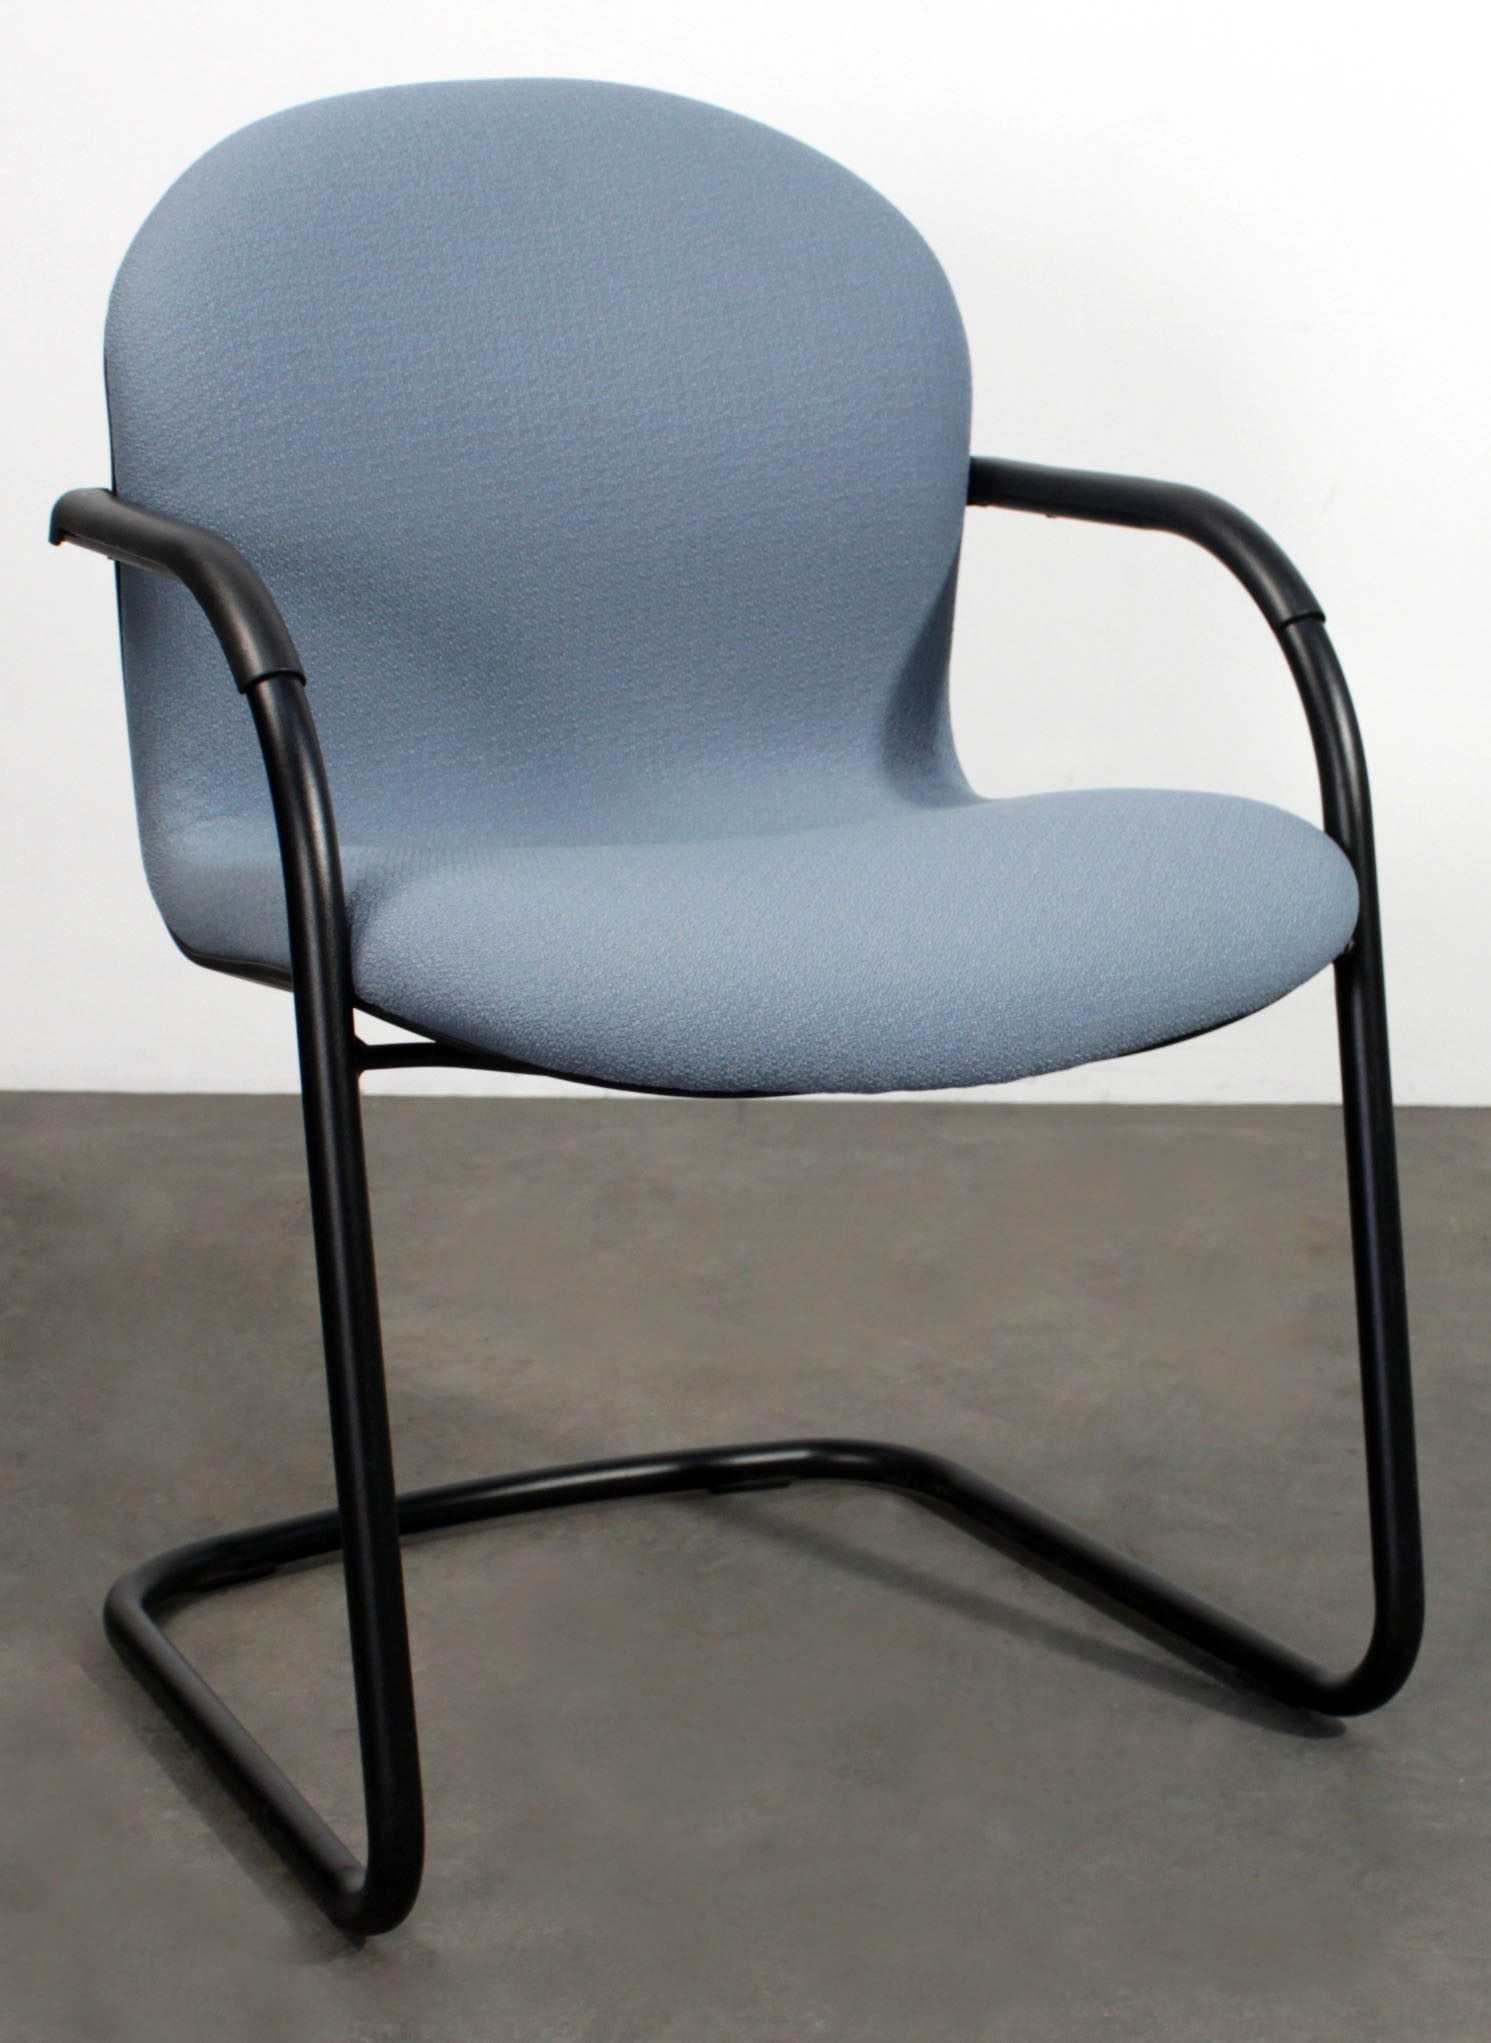 knoll rpm chair steel office price used side light blue national